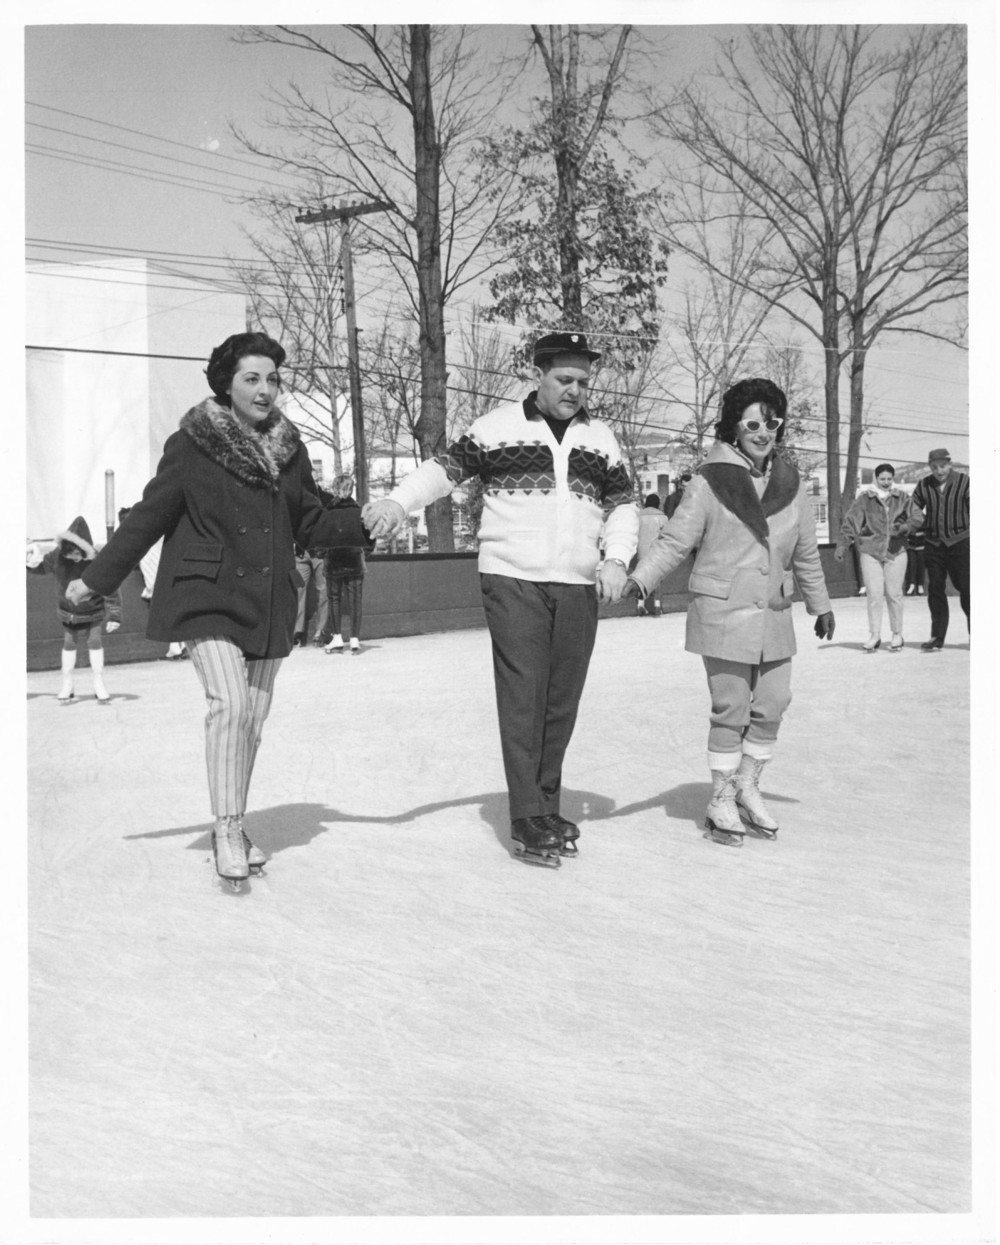 grandma Ruthie Ice Skating with Friends.jpg